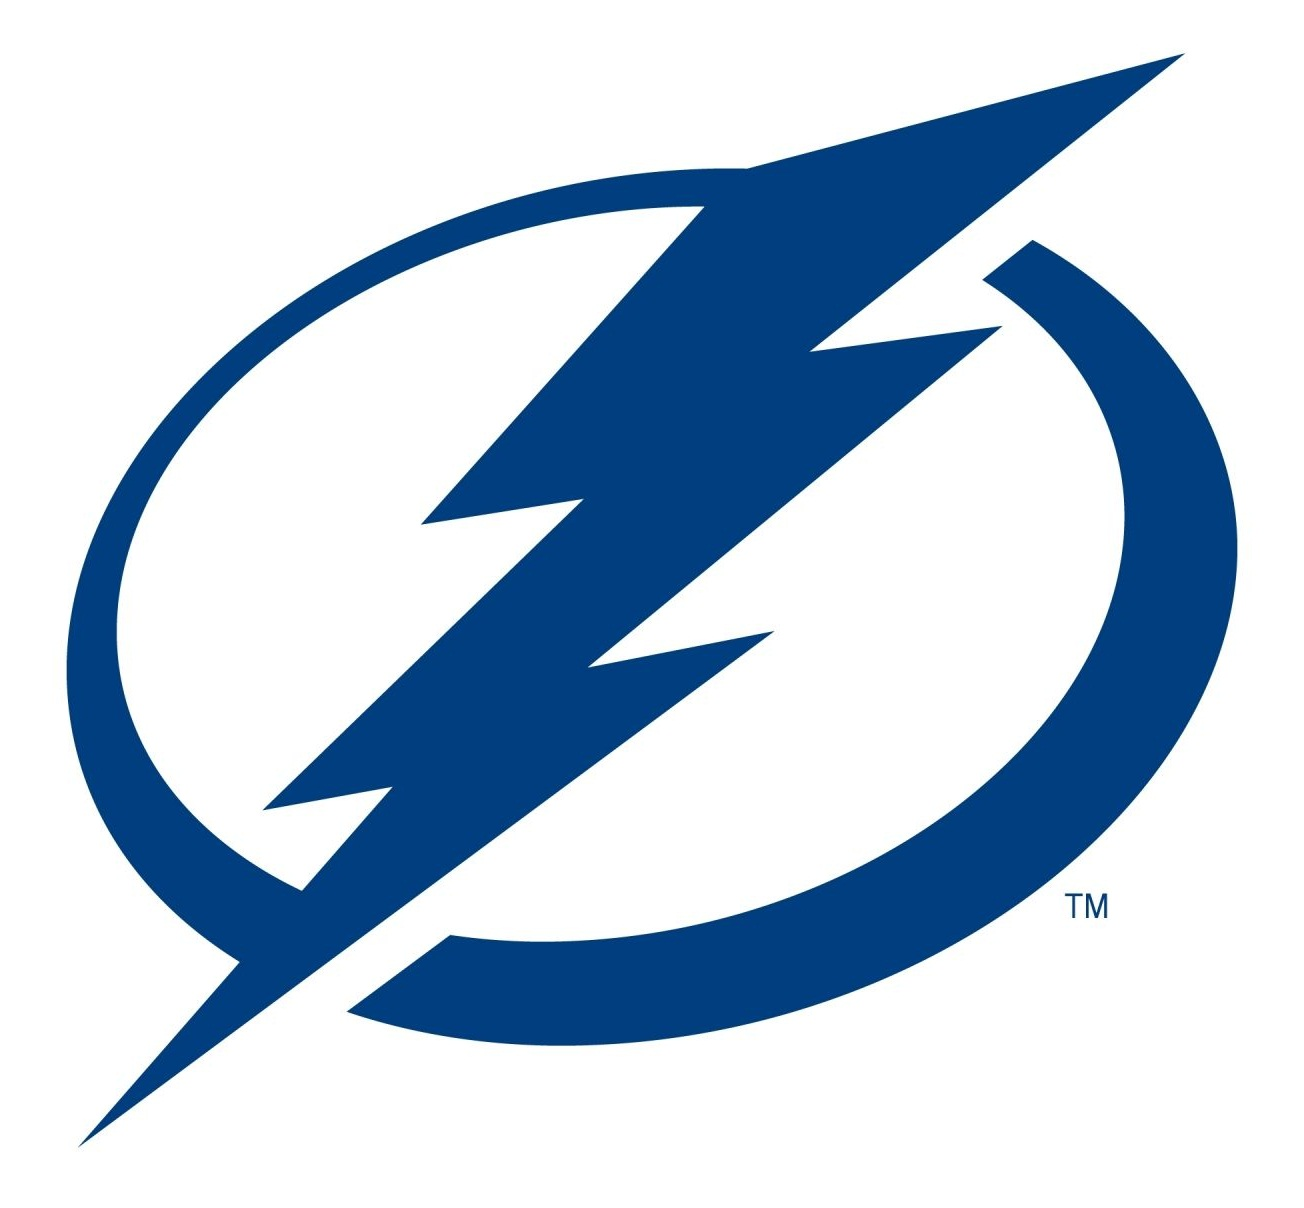 Tampa Bay Lightning Logo tampa bay lightning logo wallpaper Logo 1304x1208